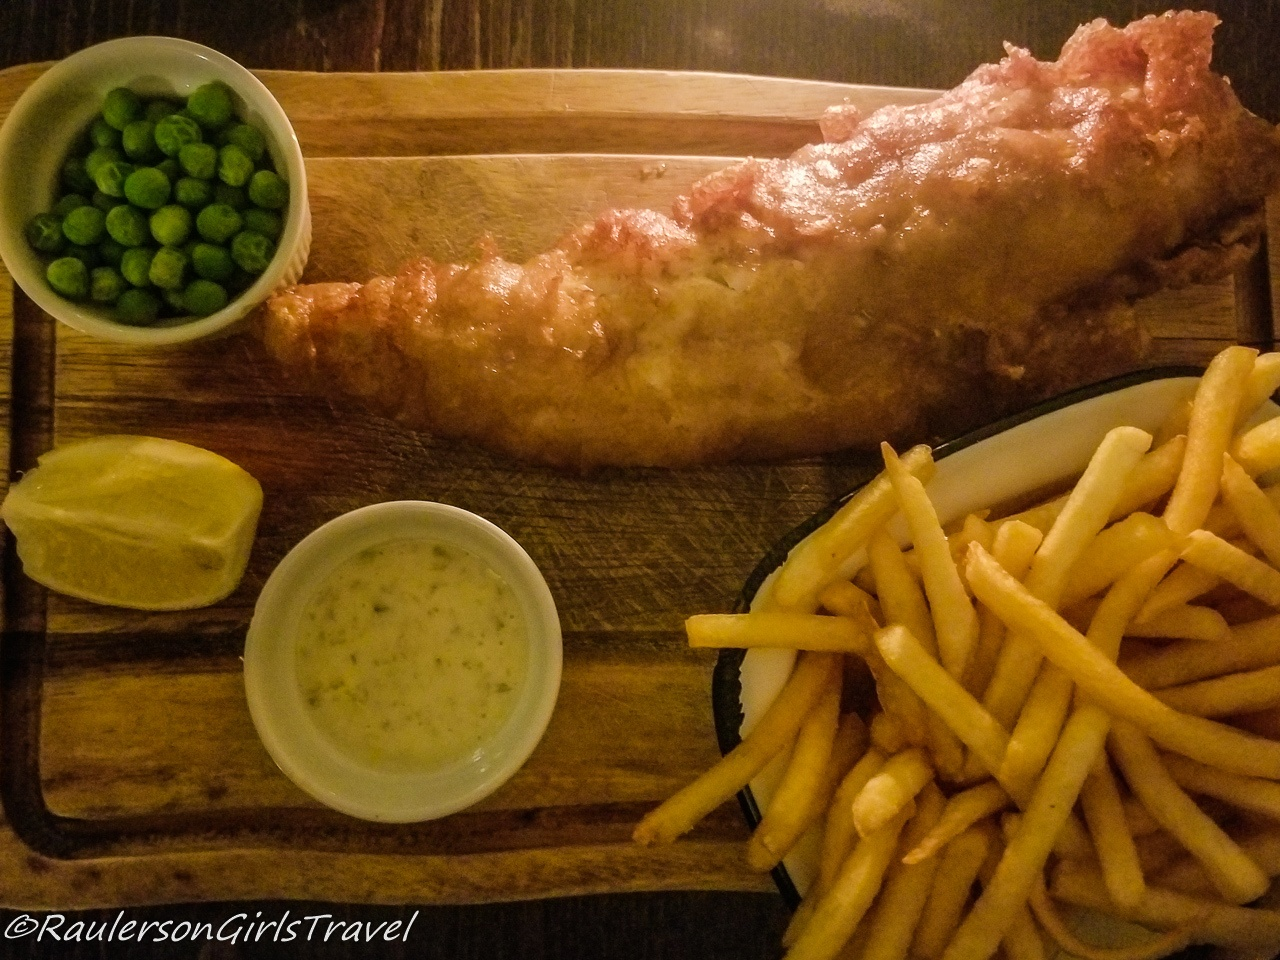 Fish and Chips in England - best food by country